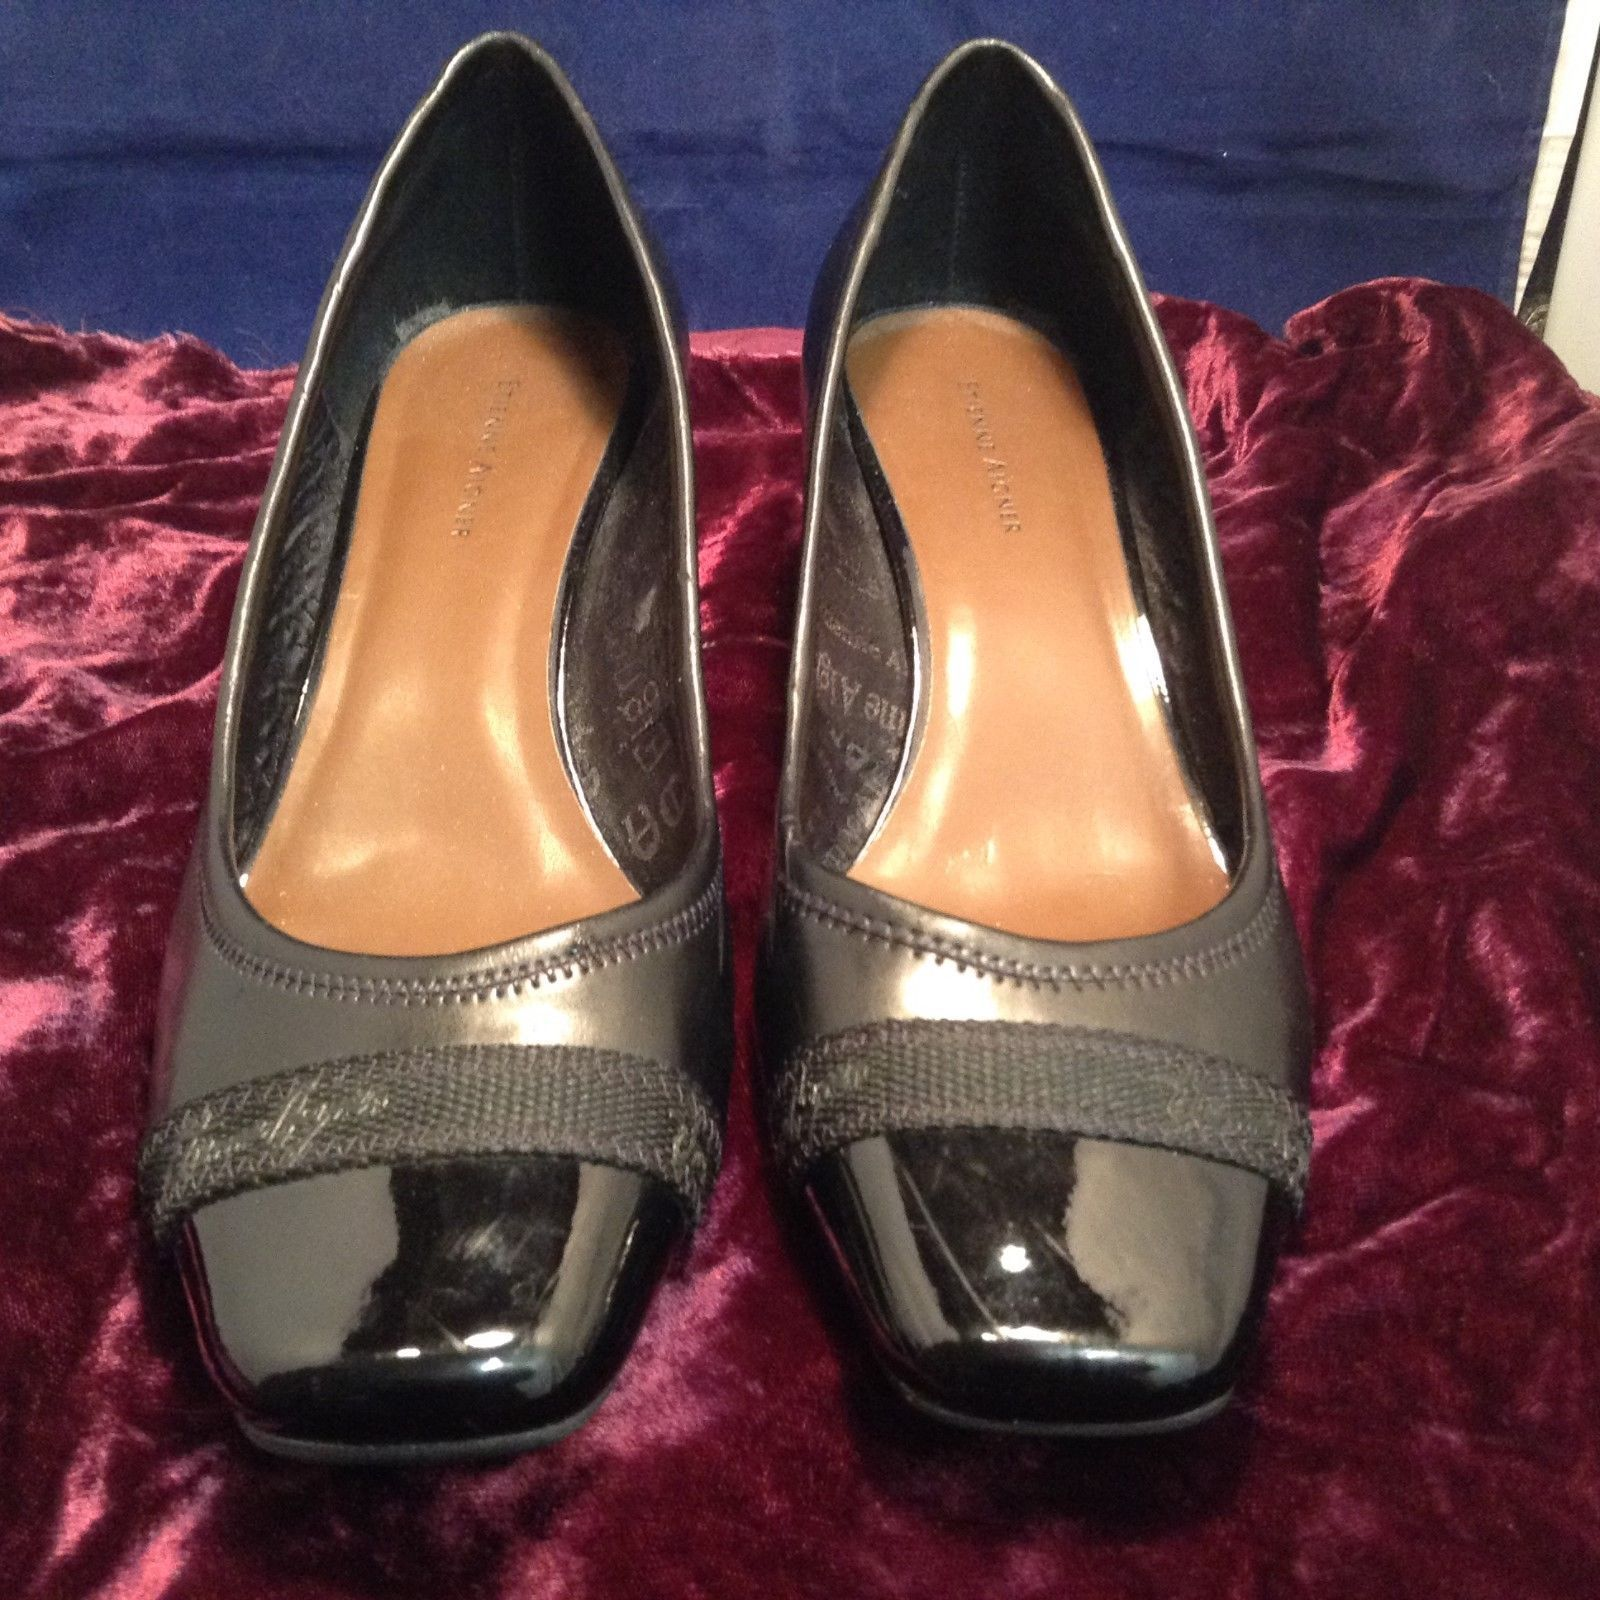 Etienne Aigner Black Pumps w Medium Heel Sz 9.5M